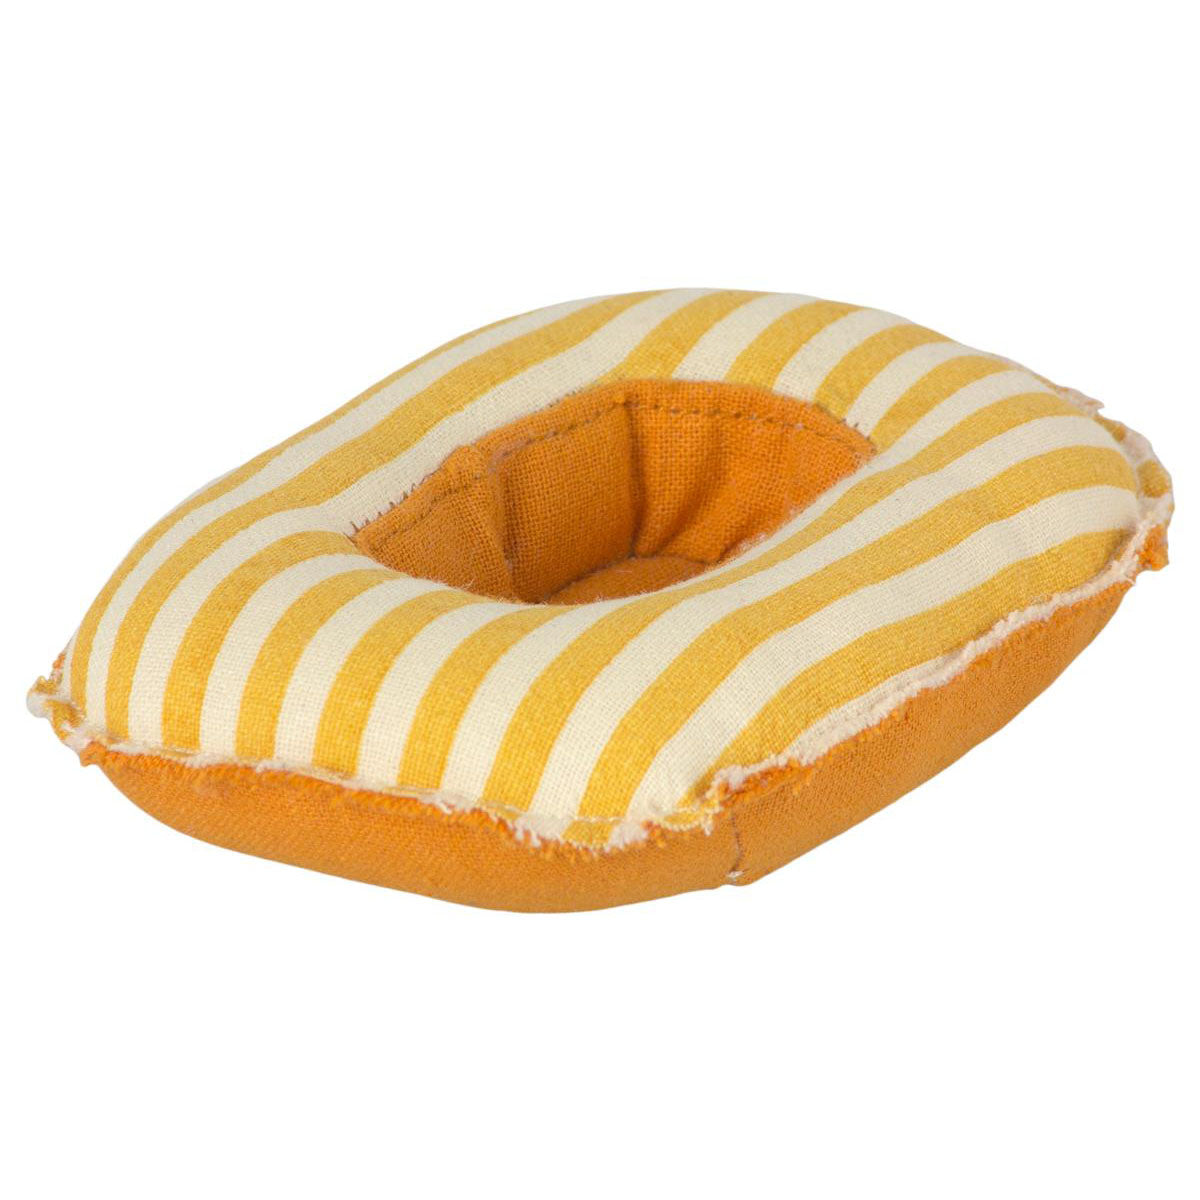 Maileg - Rubber Boat, Mouse - Yellow Stripe